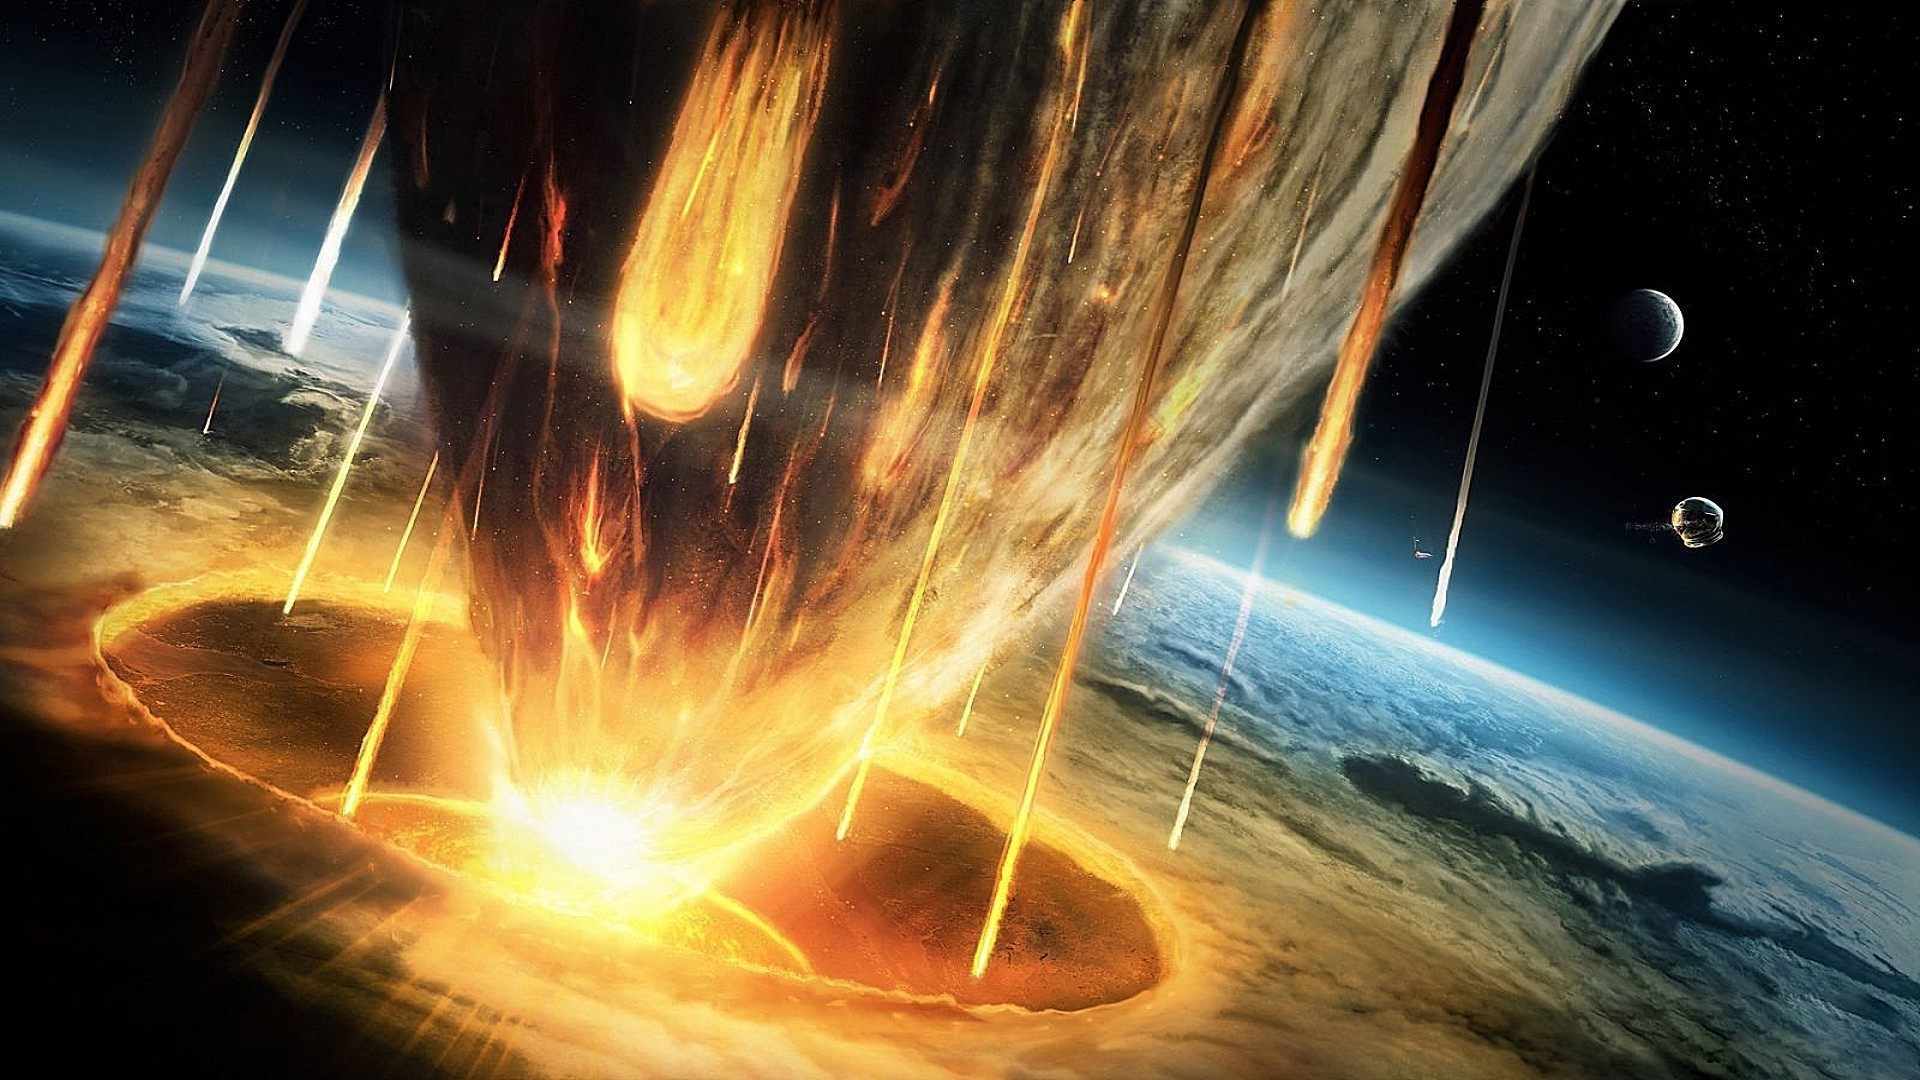 The fall of the meteorite. Android wallpapers for free